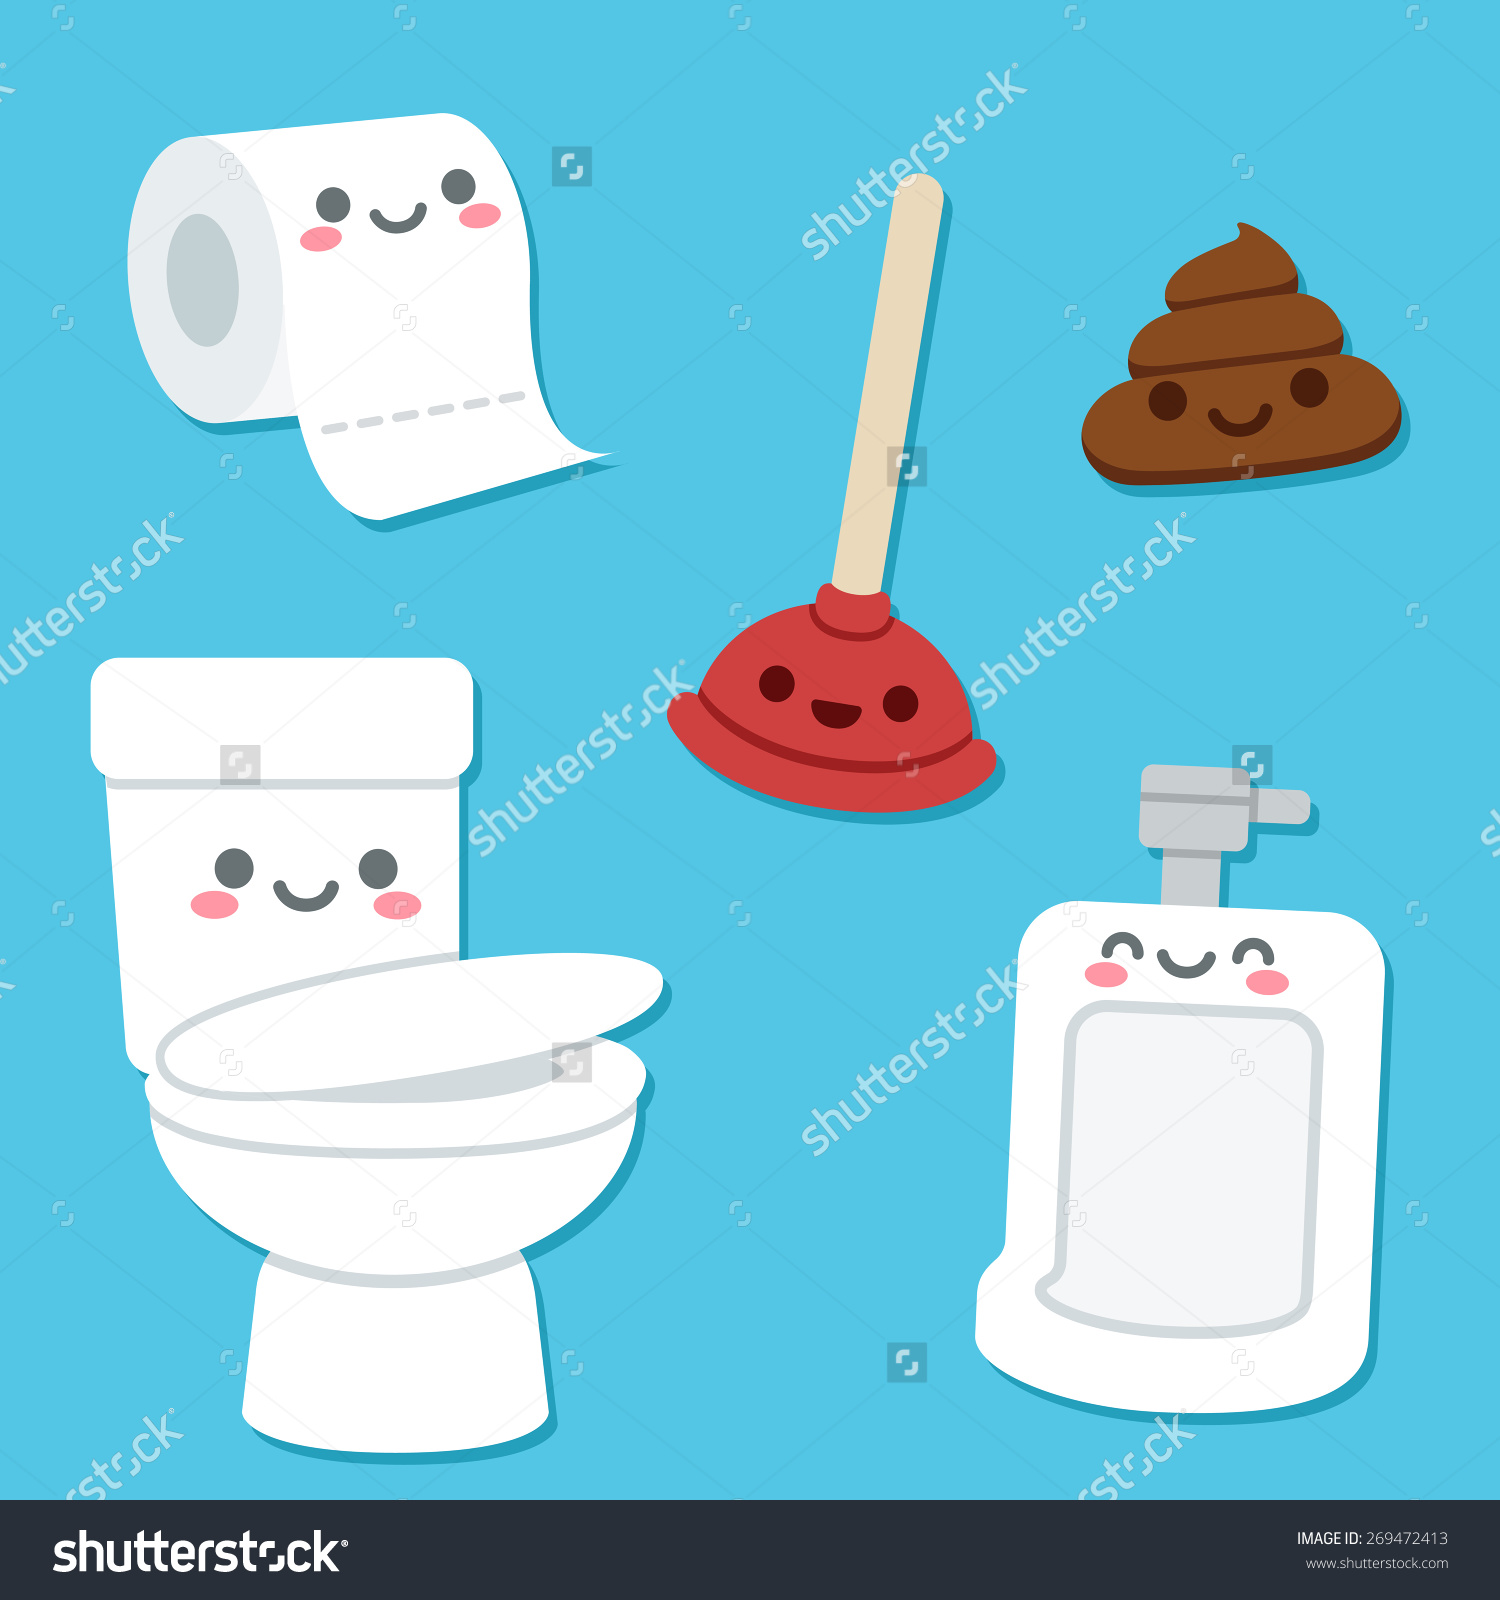 Free Cute Toilets Cliparts, Download Free Clip Art, Free Clip Art on.